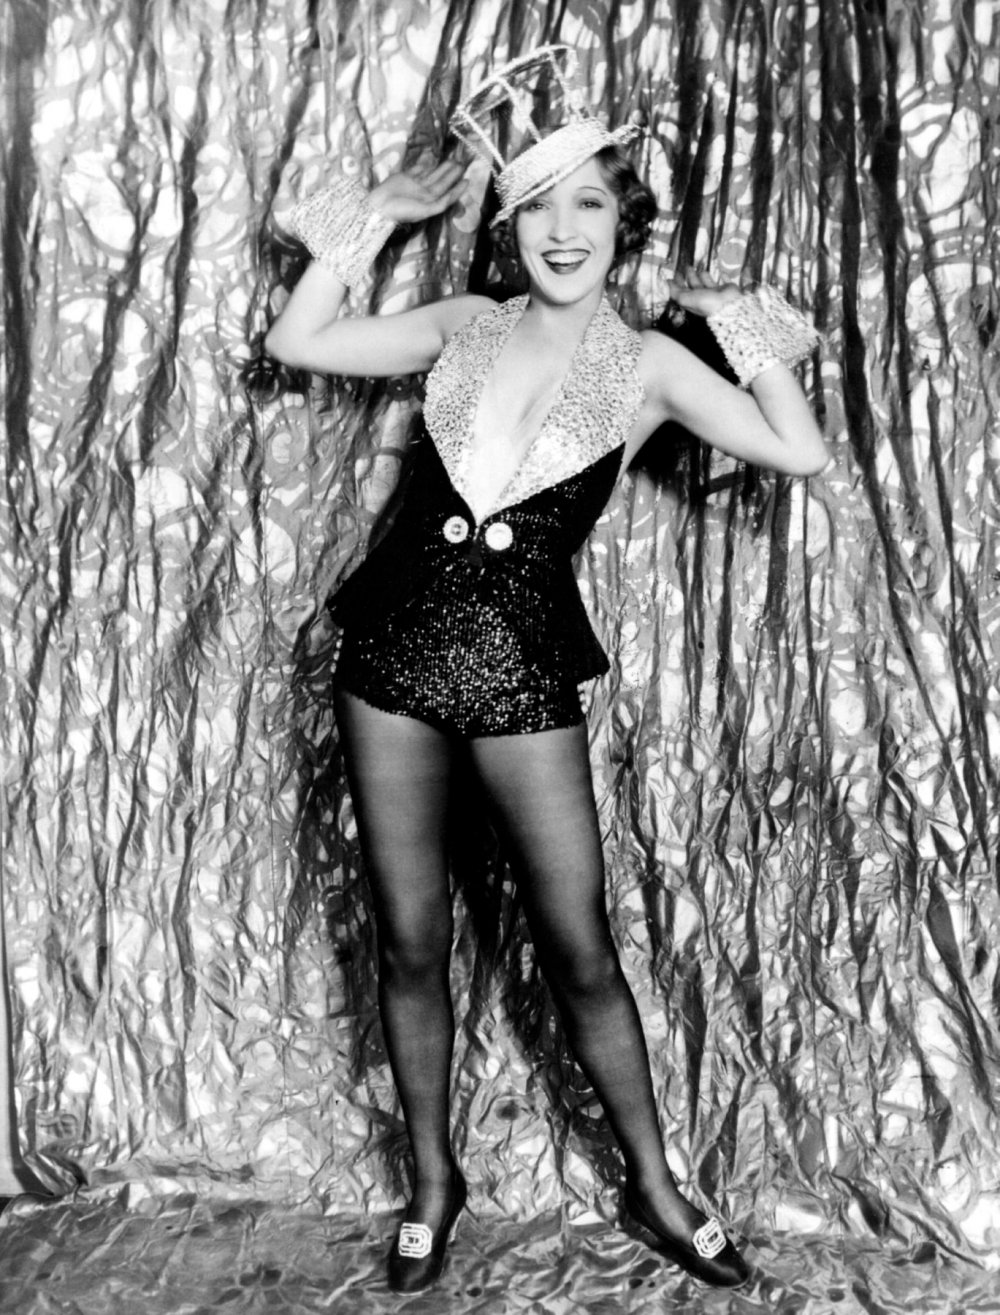 Sequinned dance ensemble designed by David Cox for Bessie Love as Hank Mahoney in The Broadway Melody (1929)